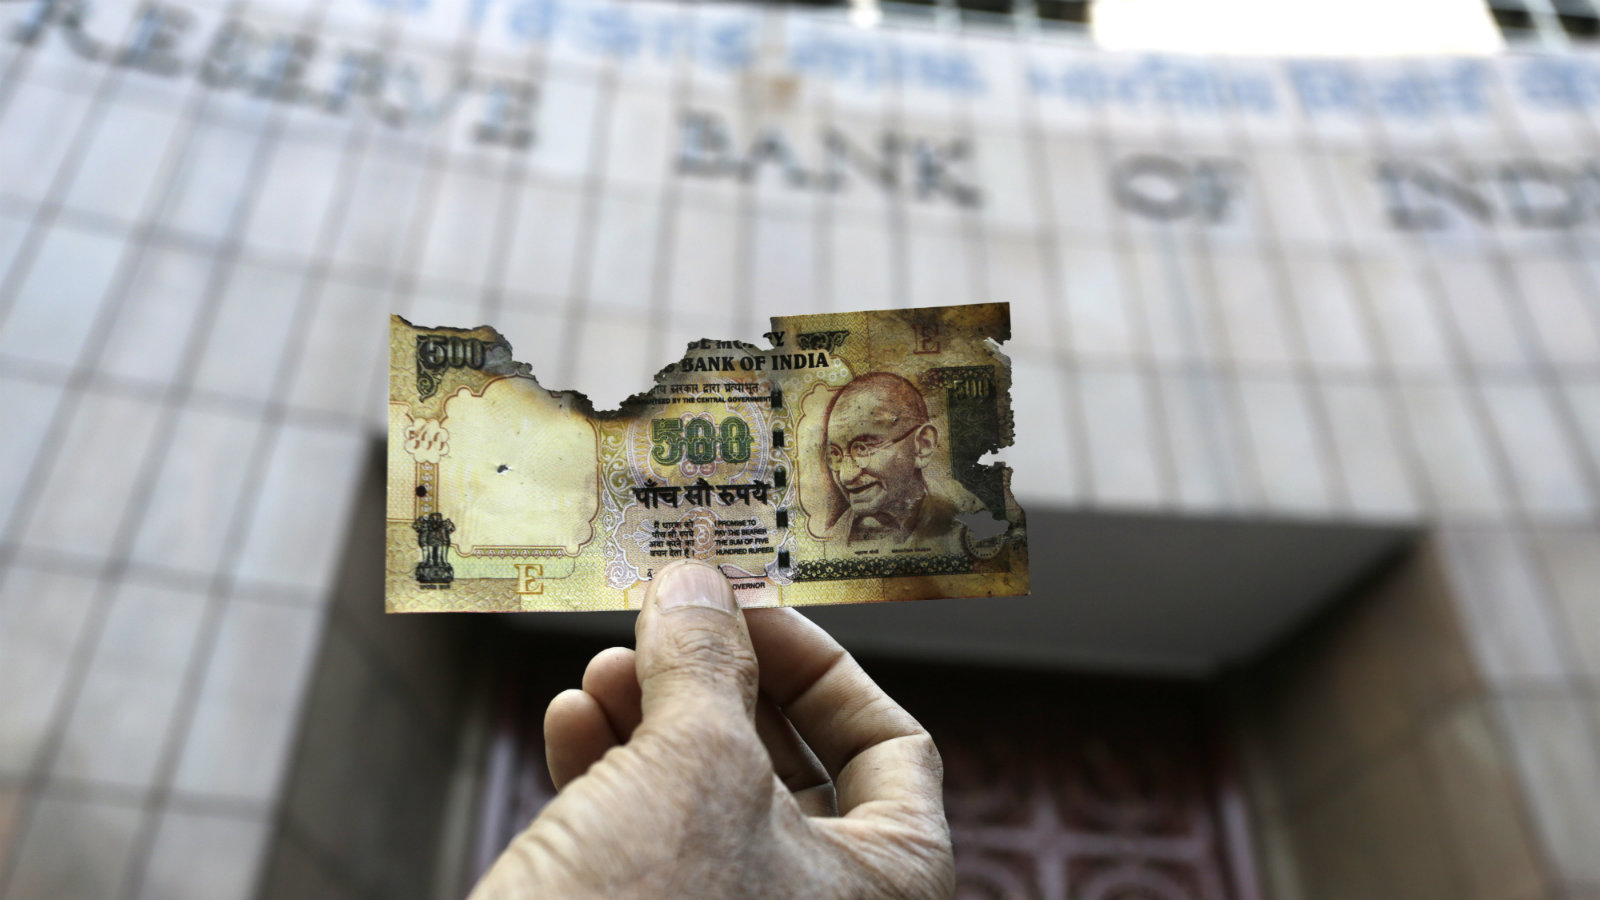 A man holds a charred facsimile of the discontinued Indian currency 500 note after a protest by a traders association demanding adequate arrangement to exchange discontinued currency notes outside Reserve Bank of India in Kolkata, India, Wednesday, Nov. 16, 2016. India announced a week ago that it was withdrawing 500 and 1,000 rupee notes as legal tender to fight corruption and tax evasion. However, people are allowed a onetime swap of 4,000 rupees ($59) at any bank in exchange for smaller notes to meet immediate needs